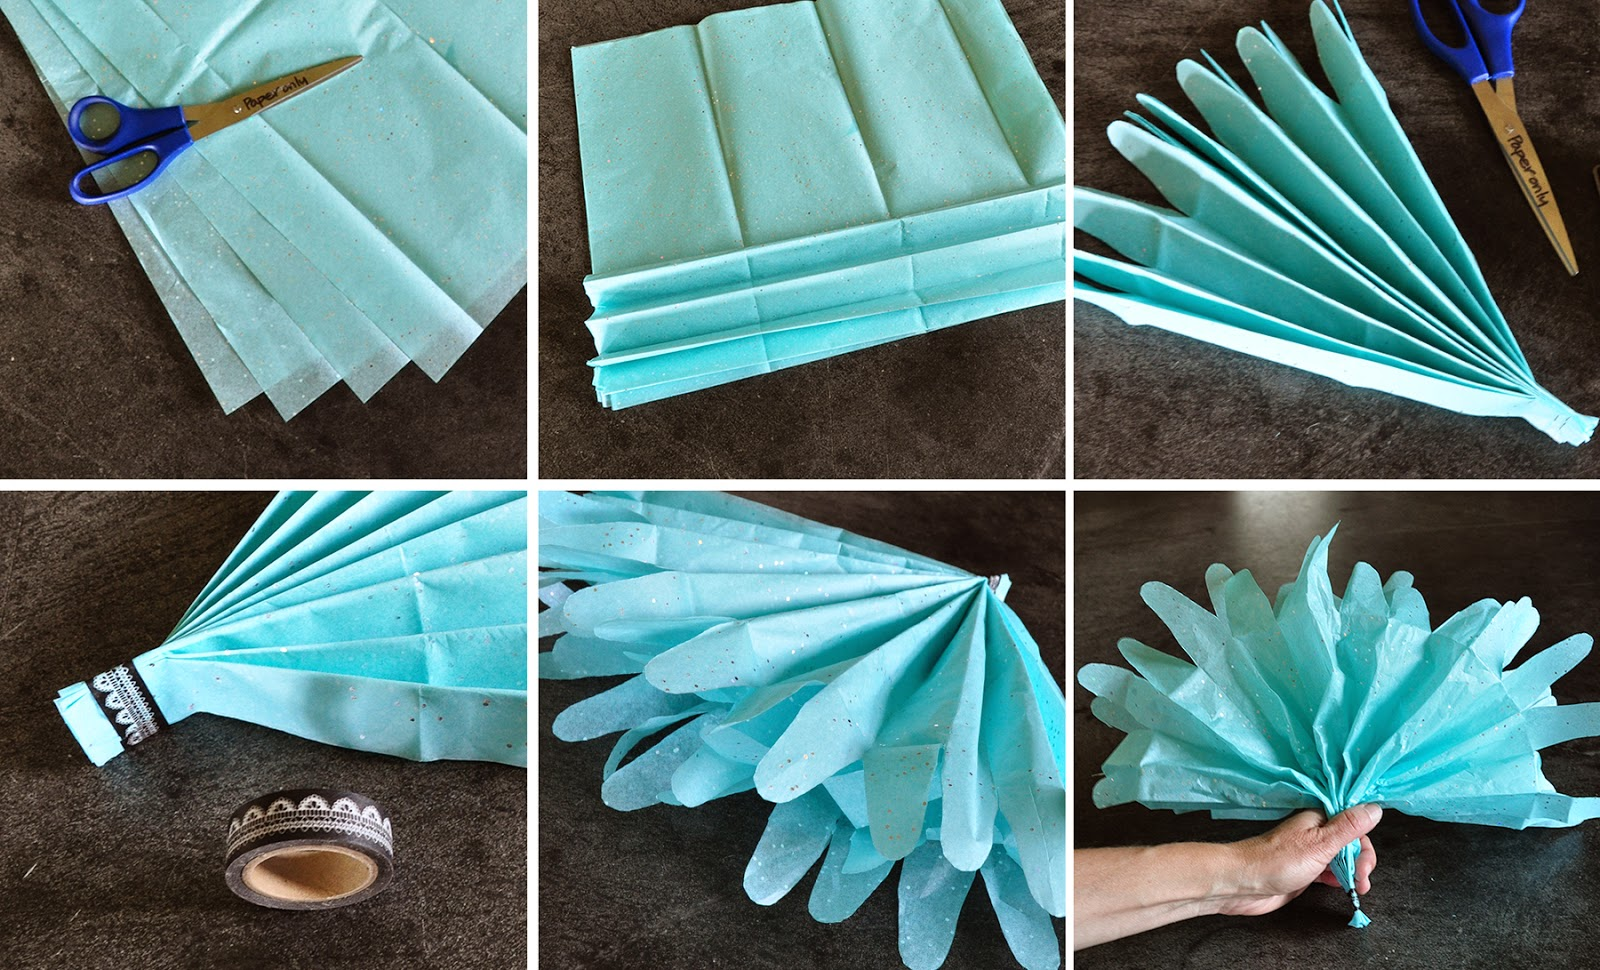 diy tissue paper pom pom gift toppers by Lorrie Everitt from Creative Bag